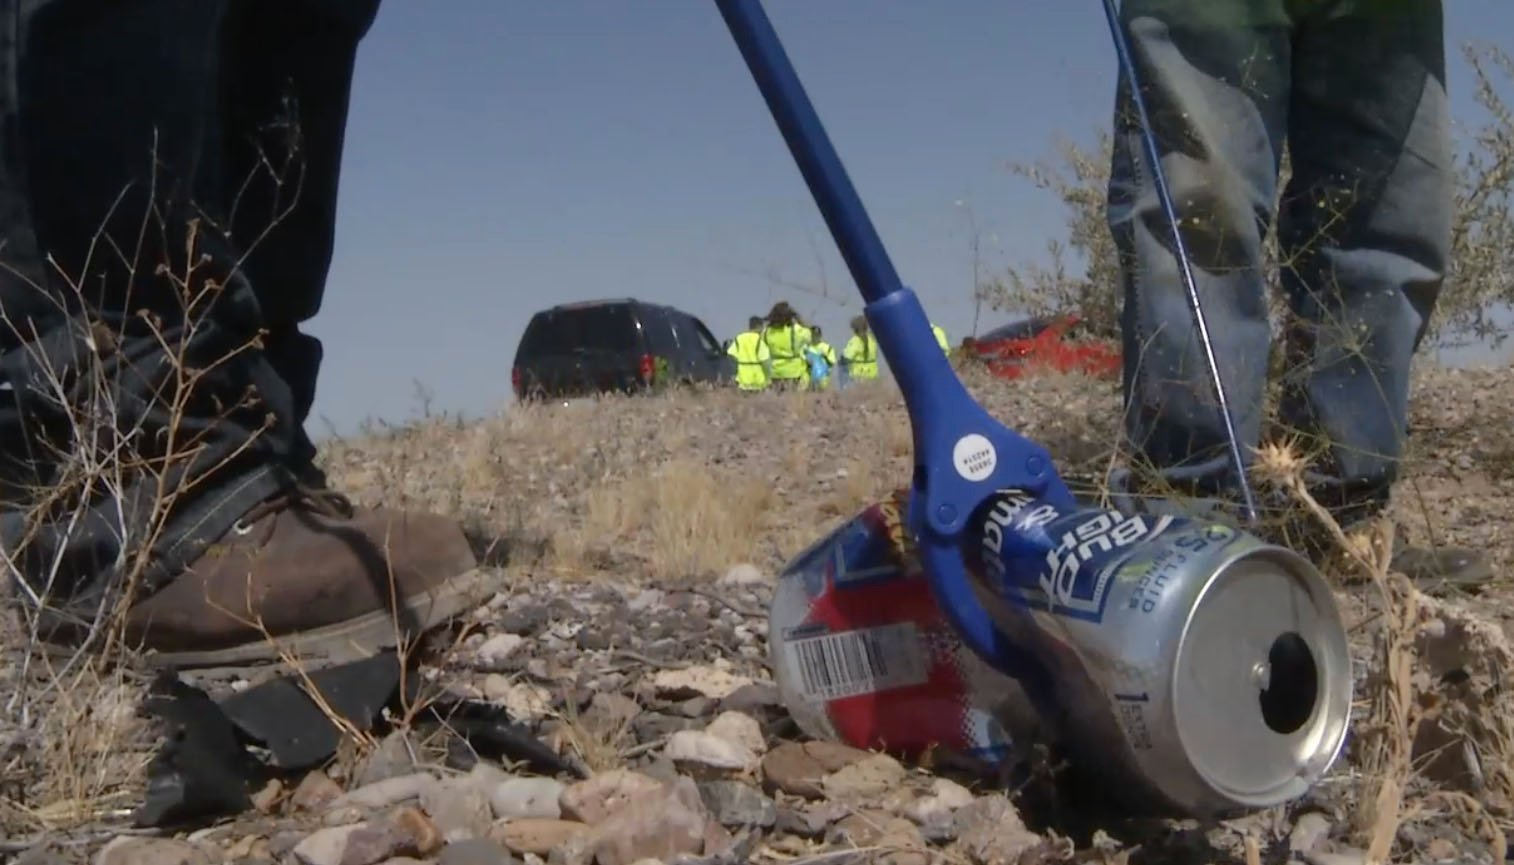 Volunteers for the Adopt a Highway program pick up a beer can along an Arizona highway. (Source: Arizona Department of Transportation)